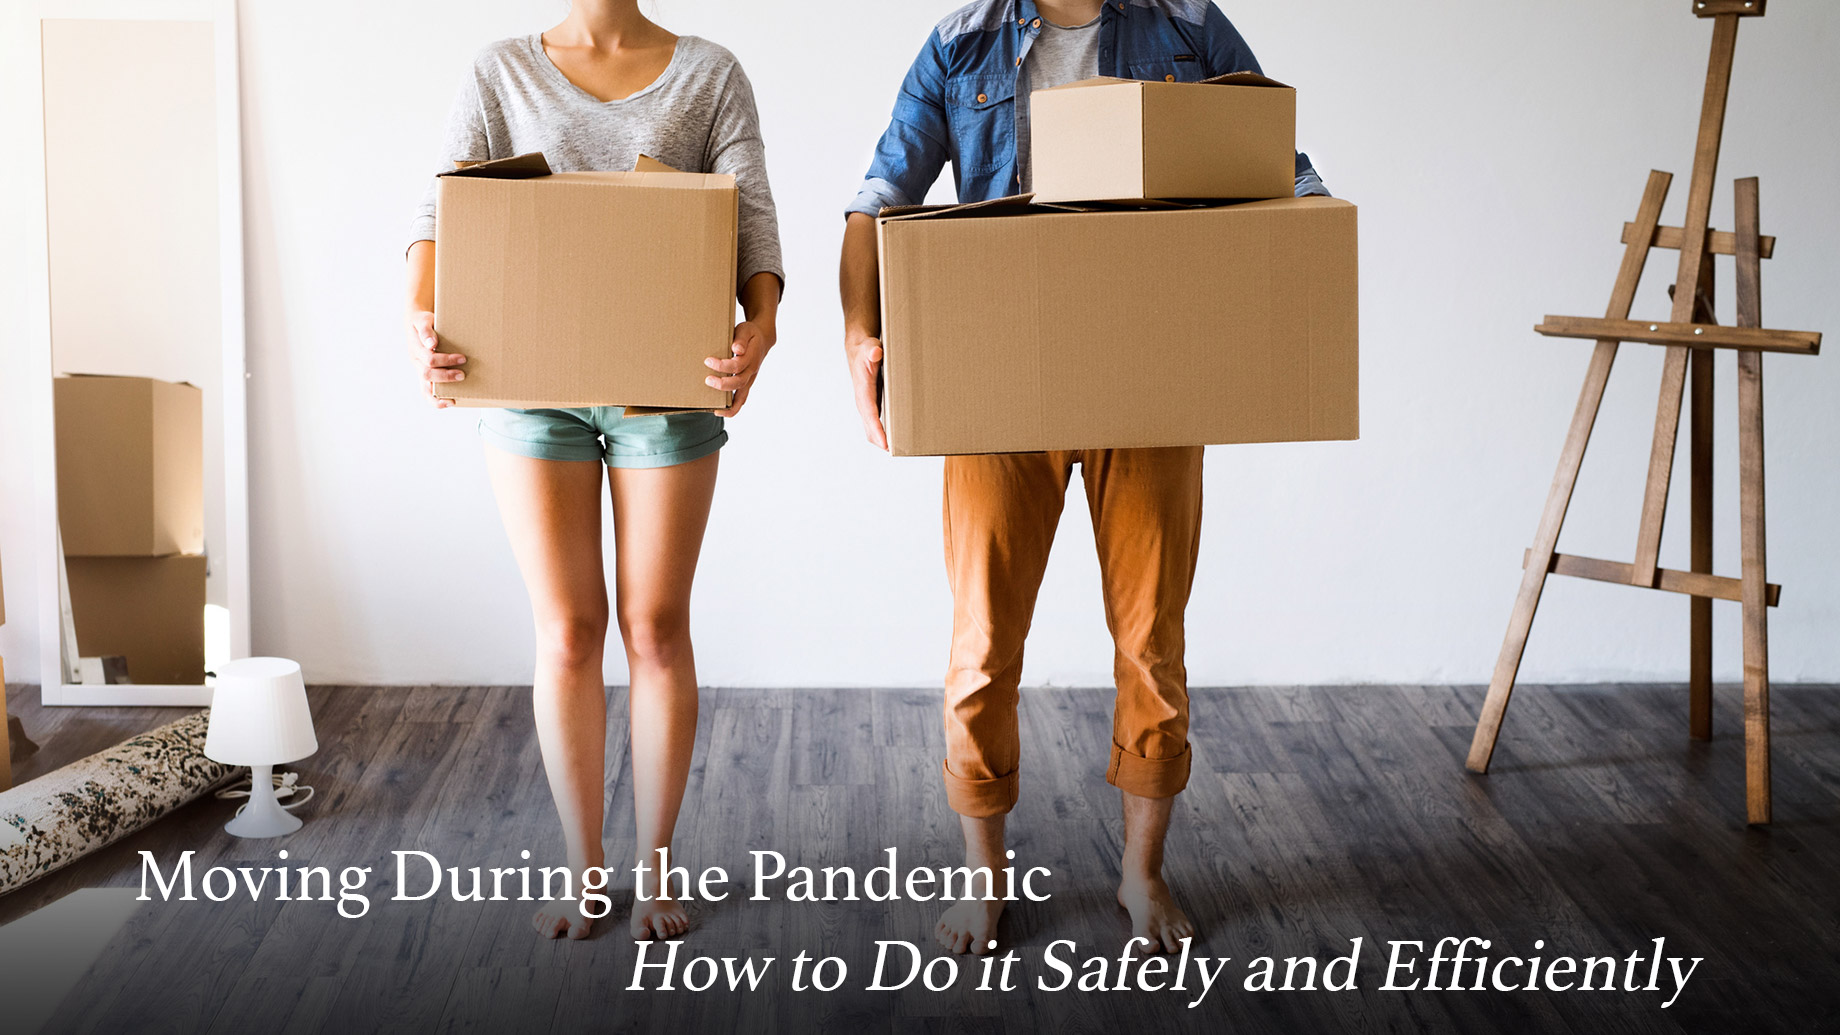 Moving During the Pandemic - How to Do it Safely and Efficiently